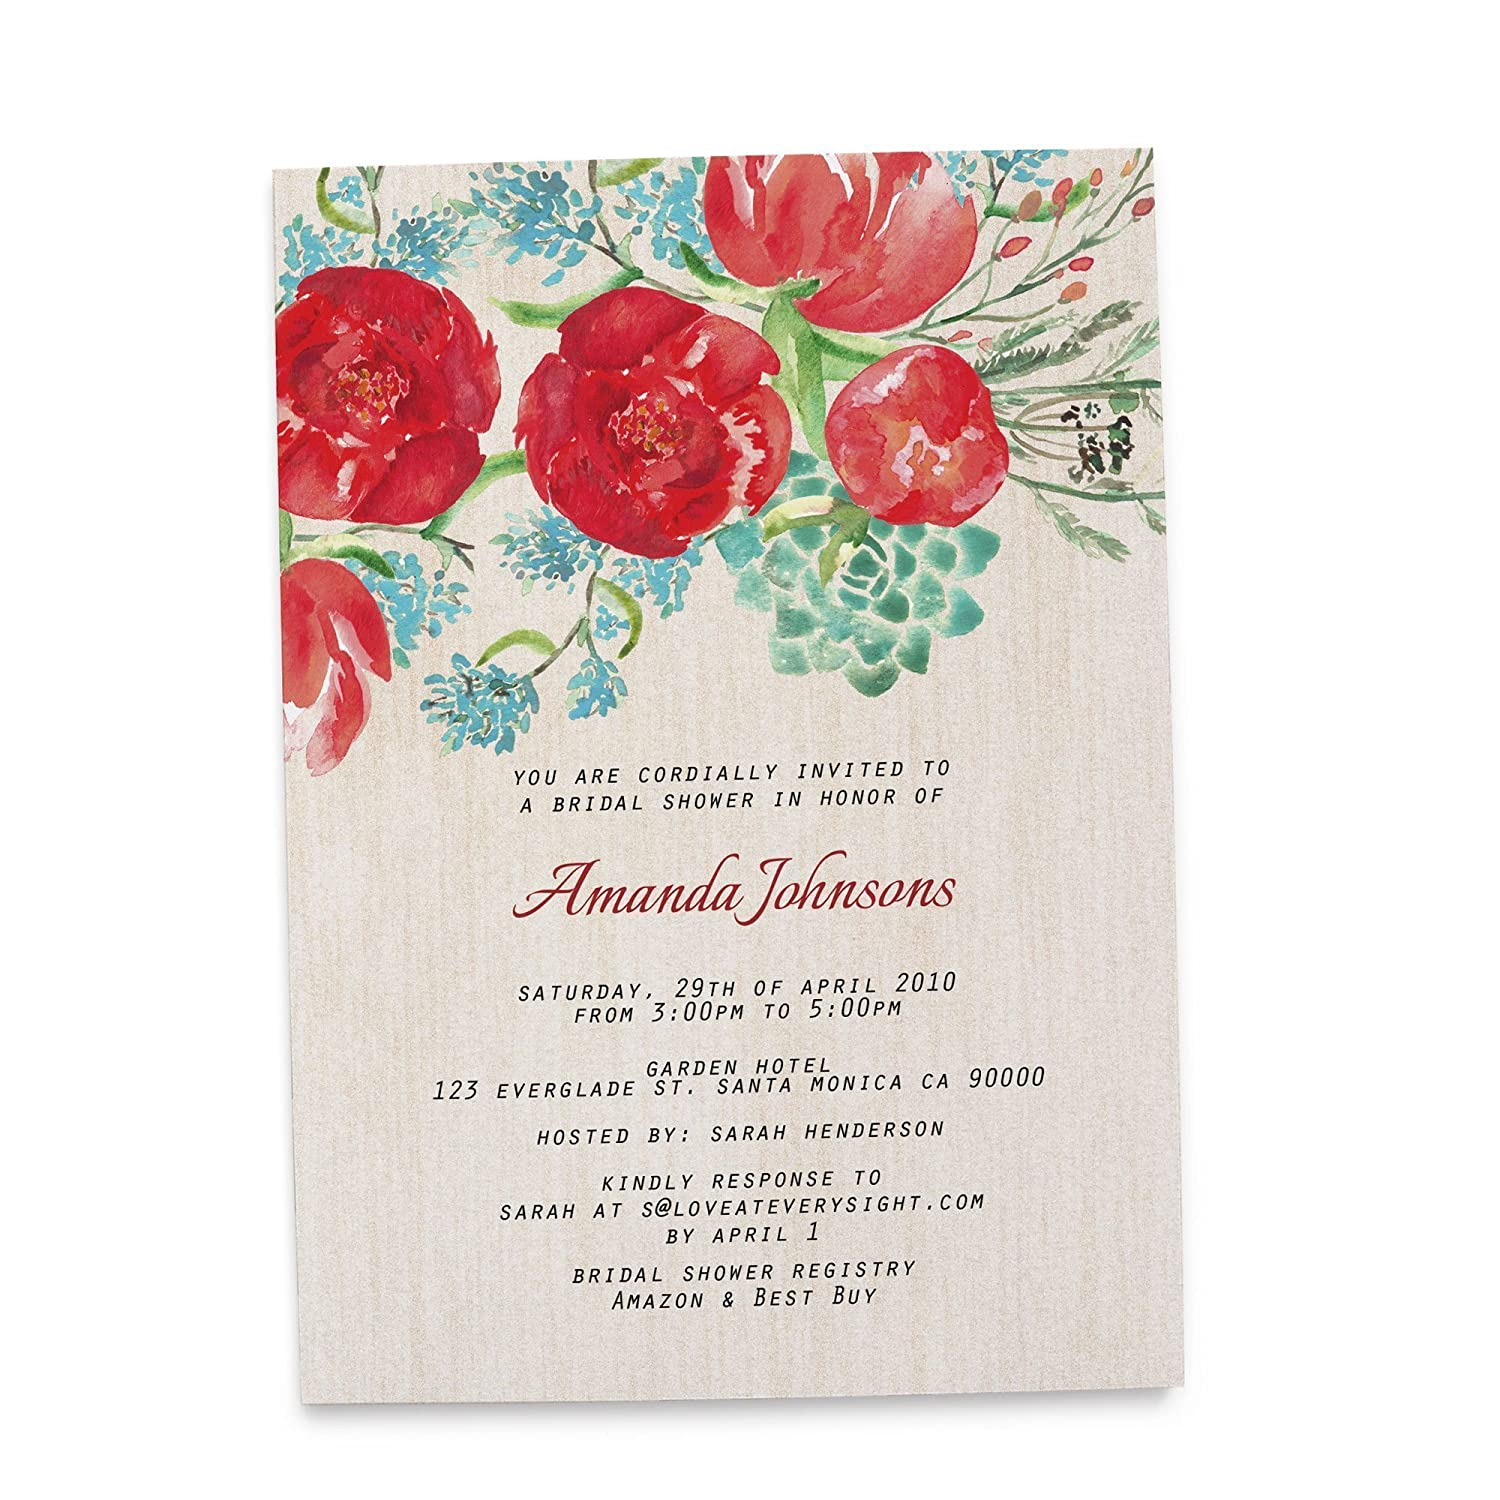 Amazon.com: Bridal Shower Party Invitations, Personalized and ...